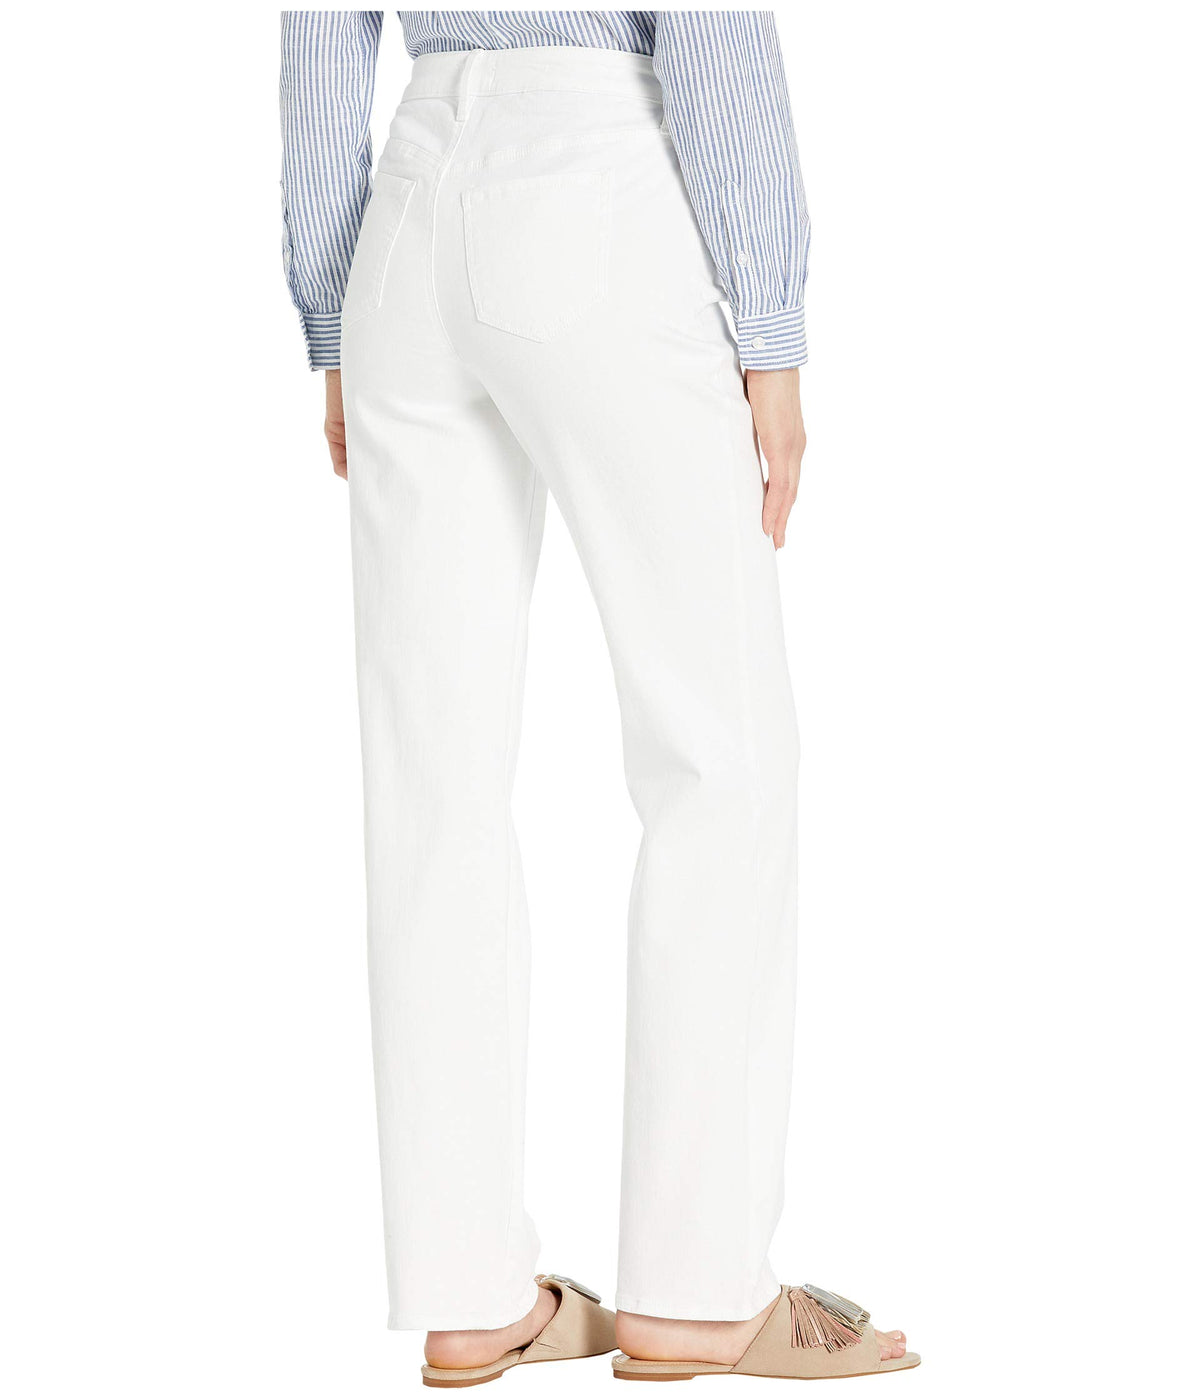 Relaxed Straight Jeans in Optic White